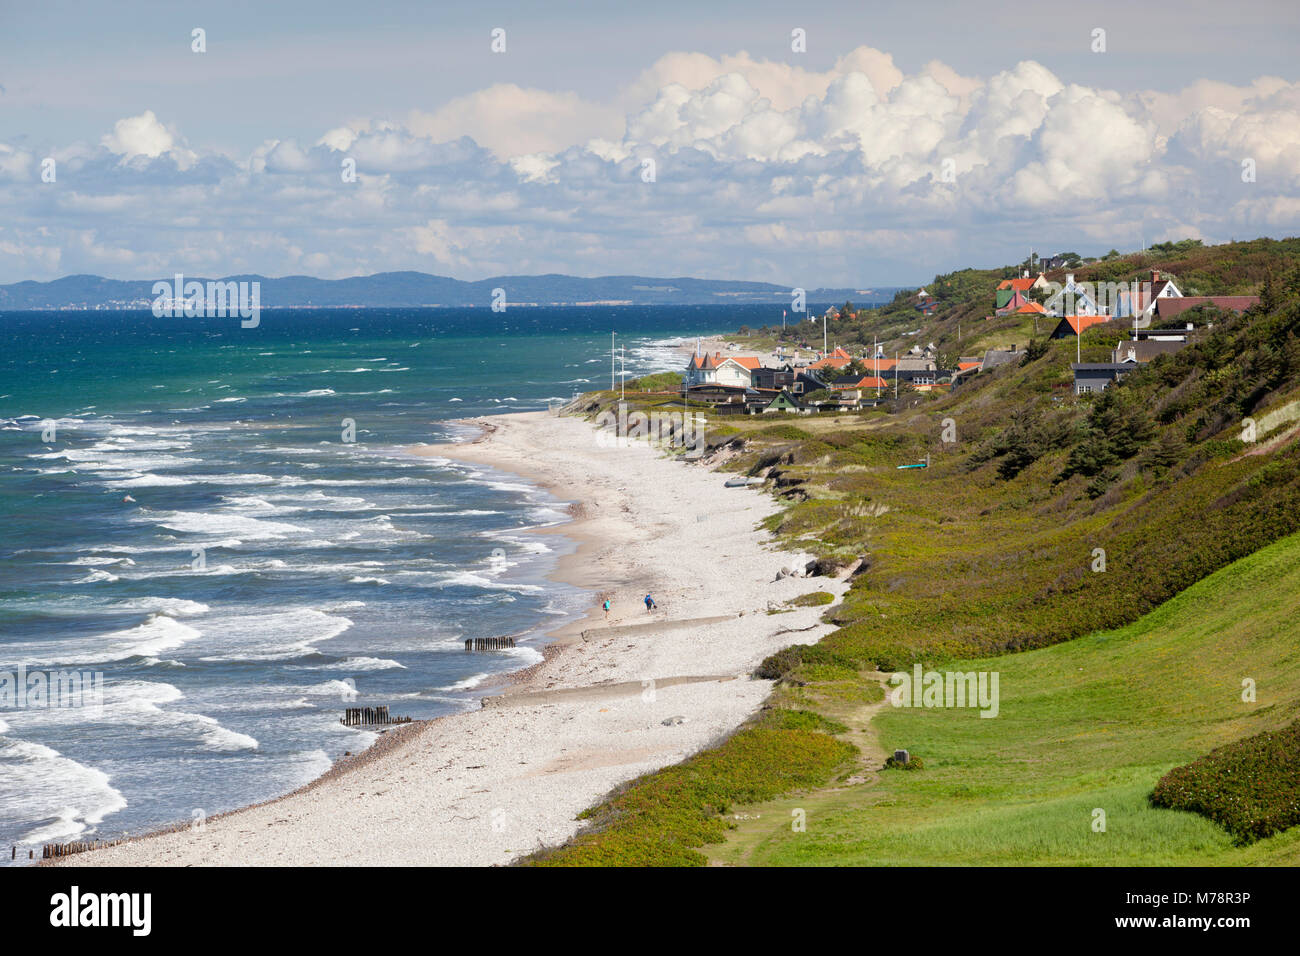 View over Rageleje Strand beach with Swedish coastline in distance, Rageleje, Kattegat Coast, Zealand, Denmark, - Stock Image